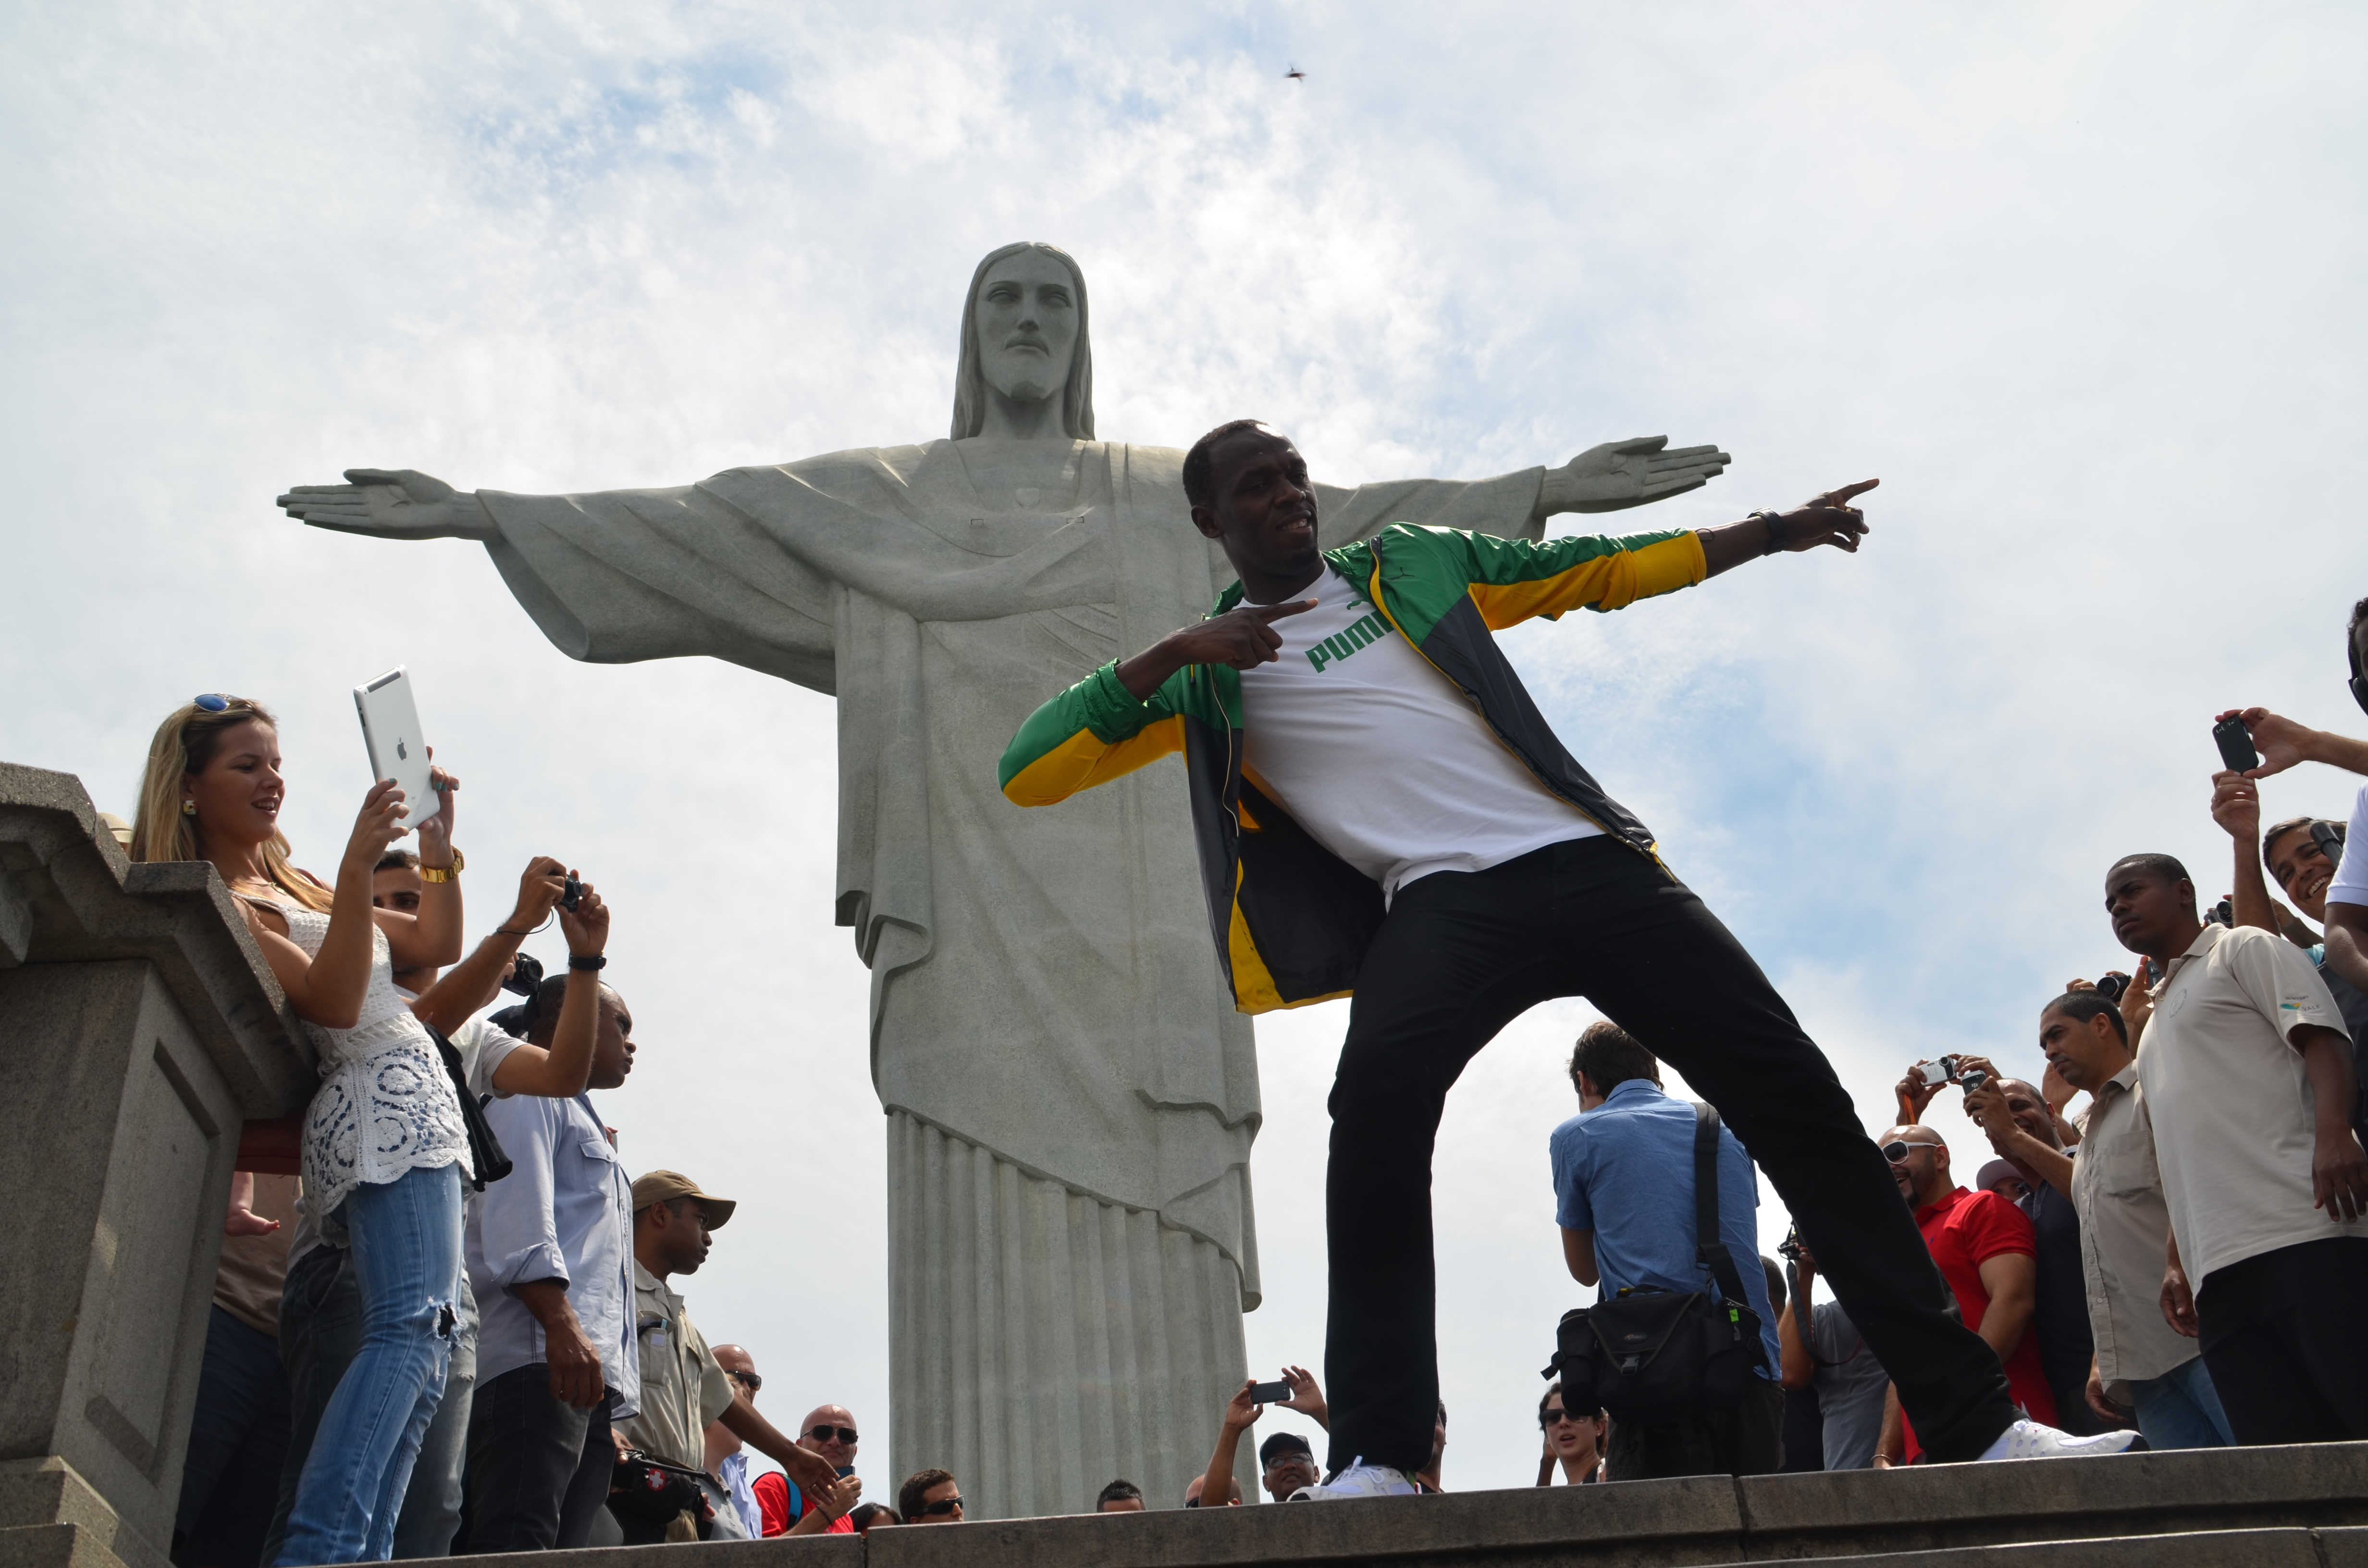 Usain Bolt to run 150m race on Copacabana beach